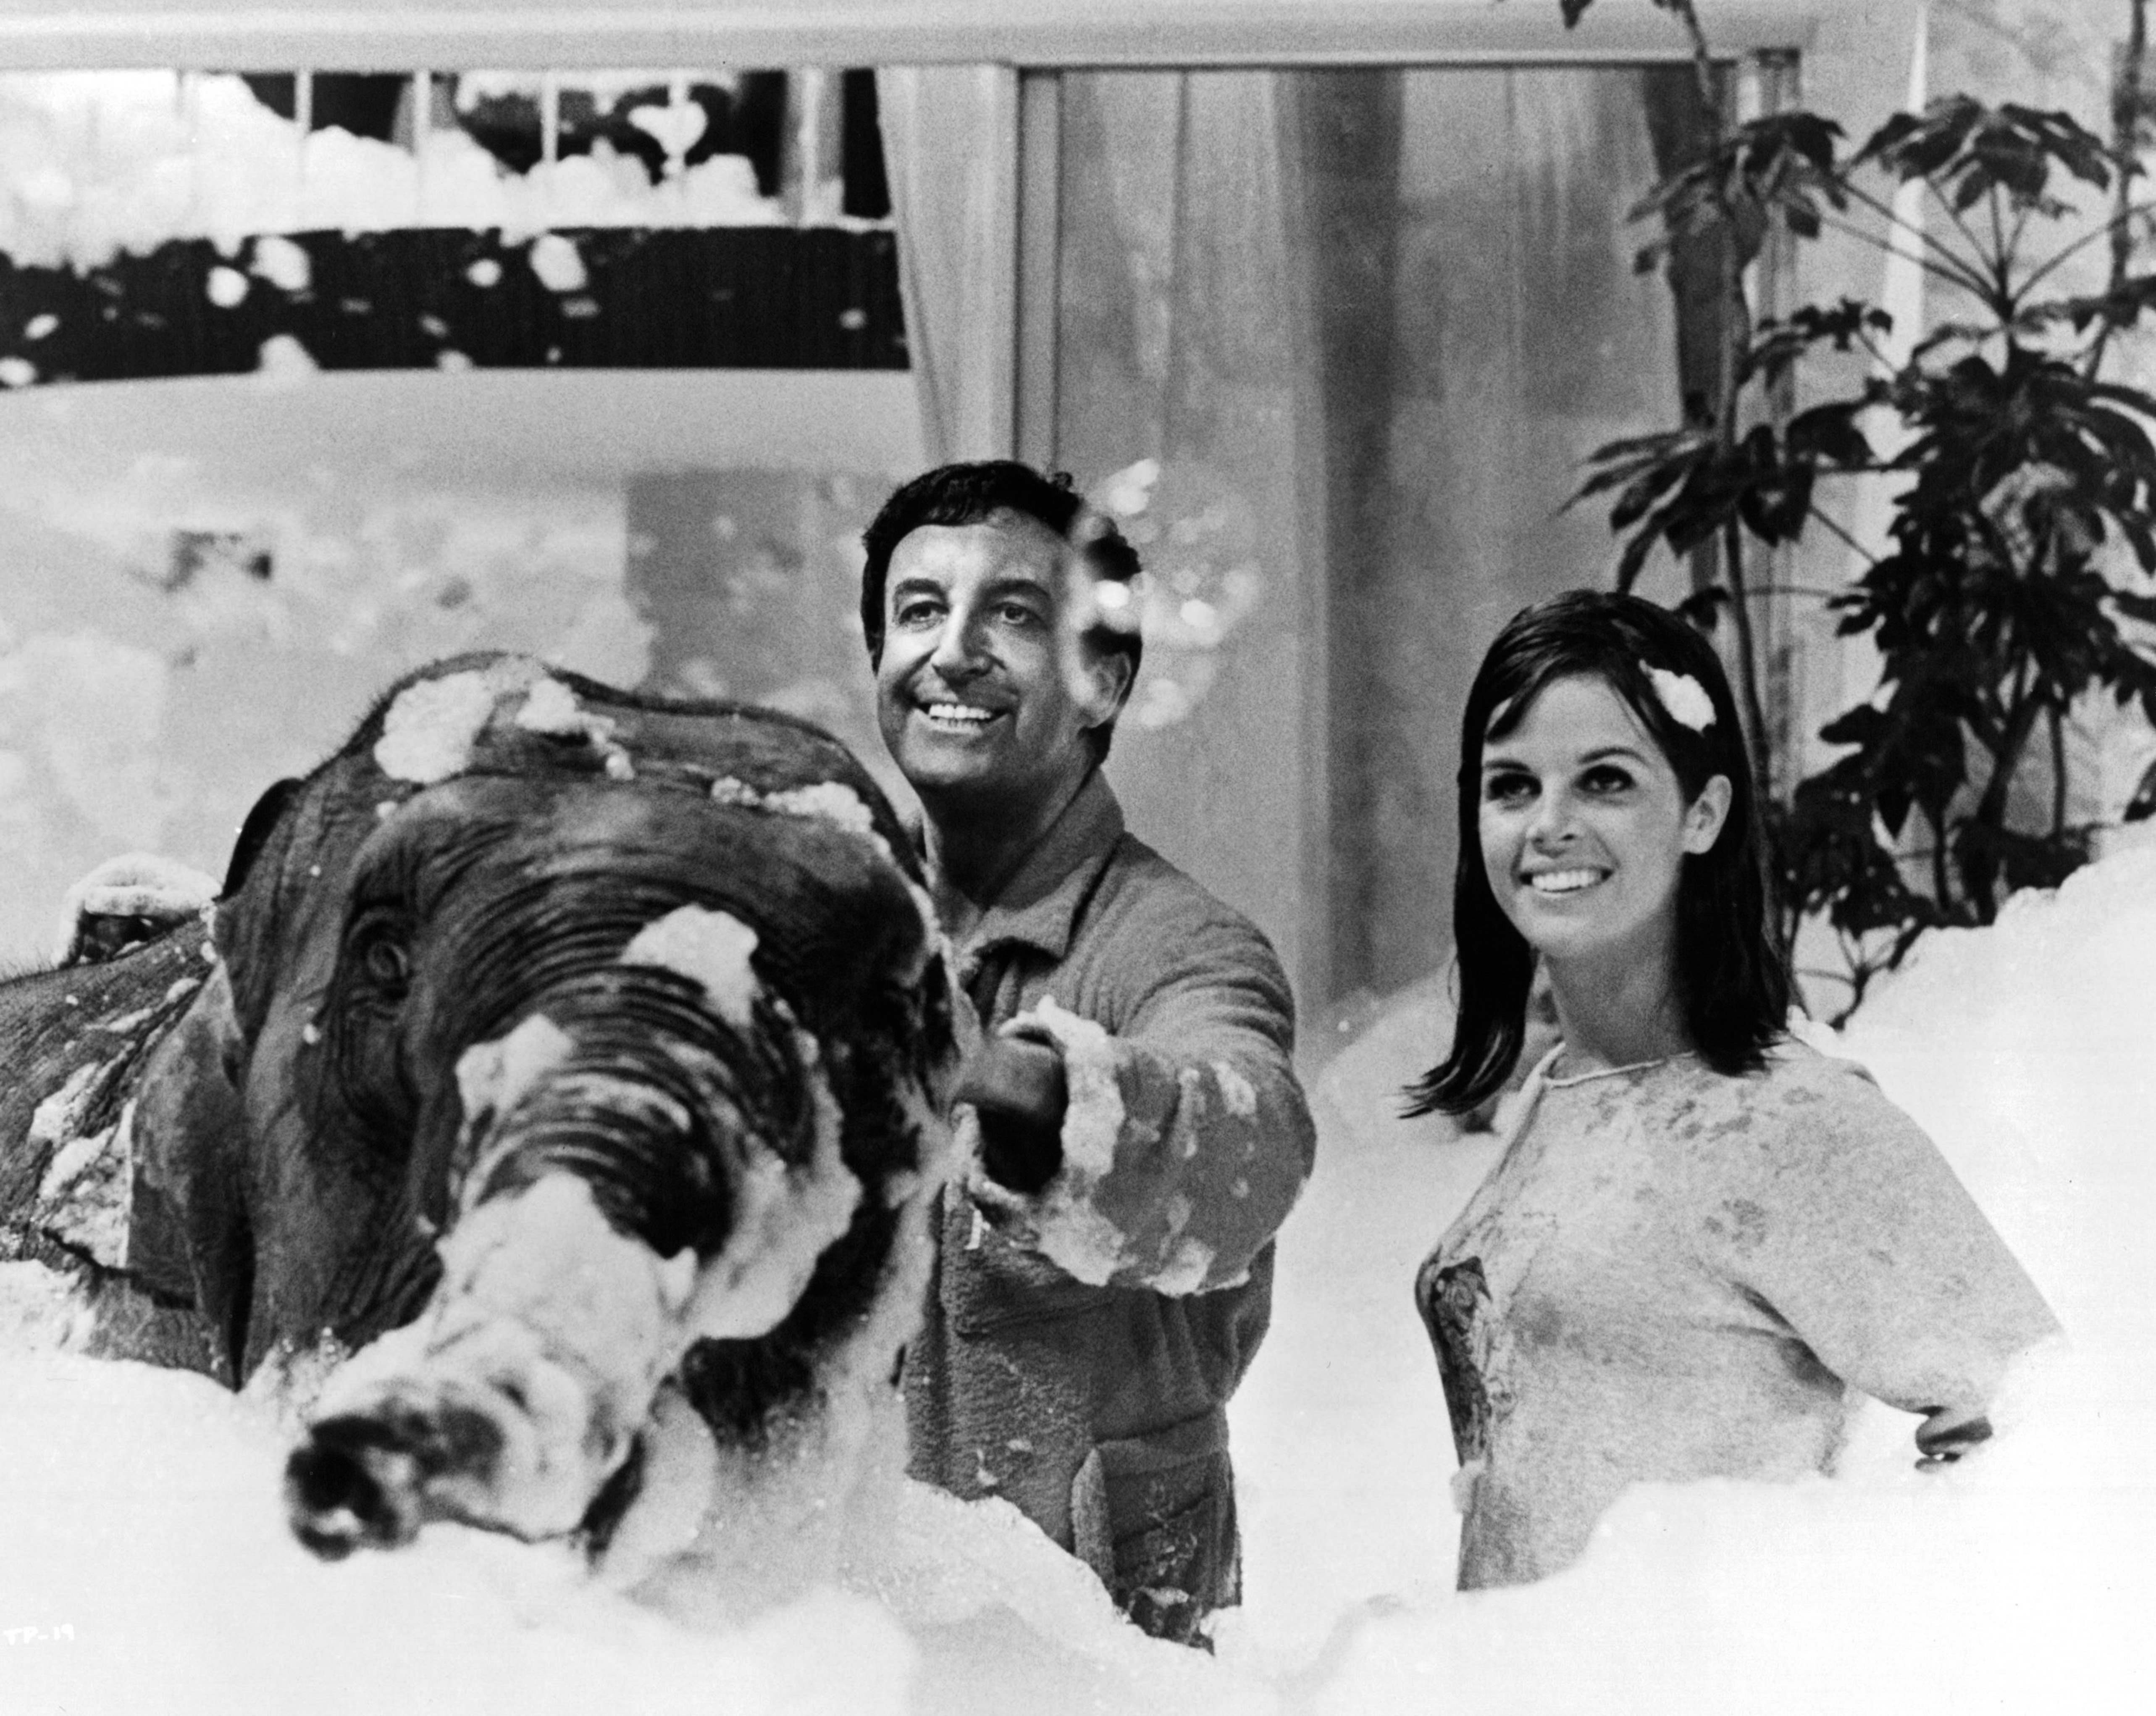 Peter Sellers and Claudine Longet in The Party (1968)